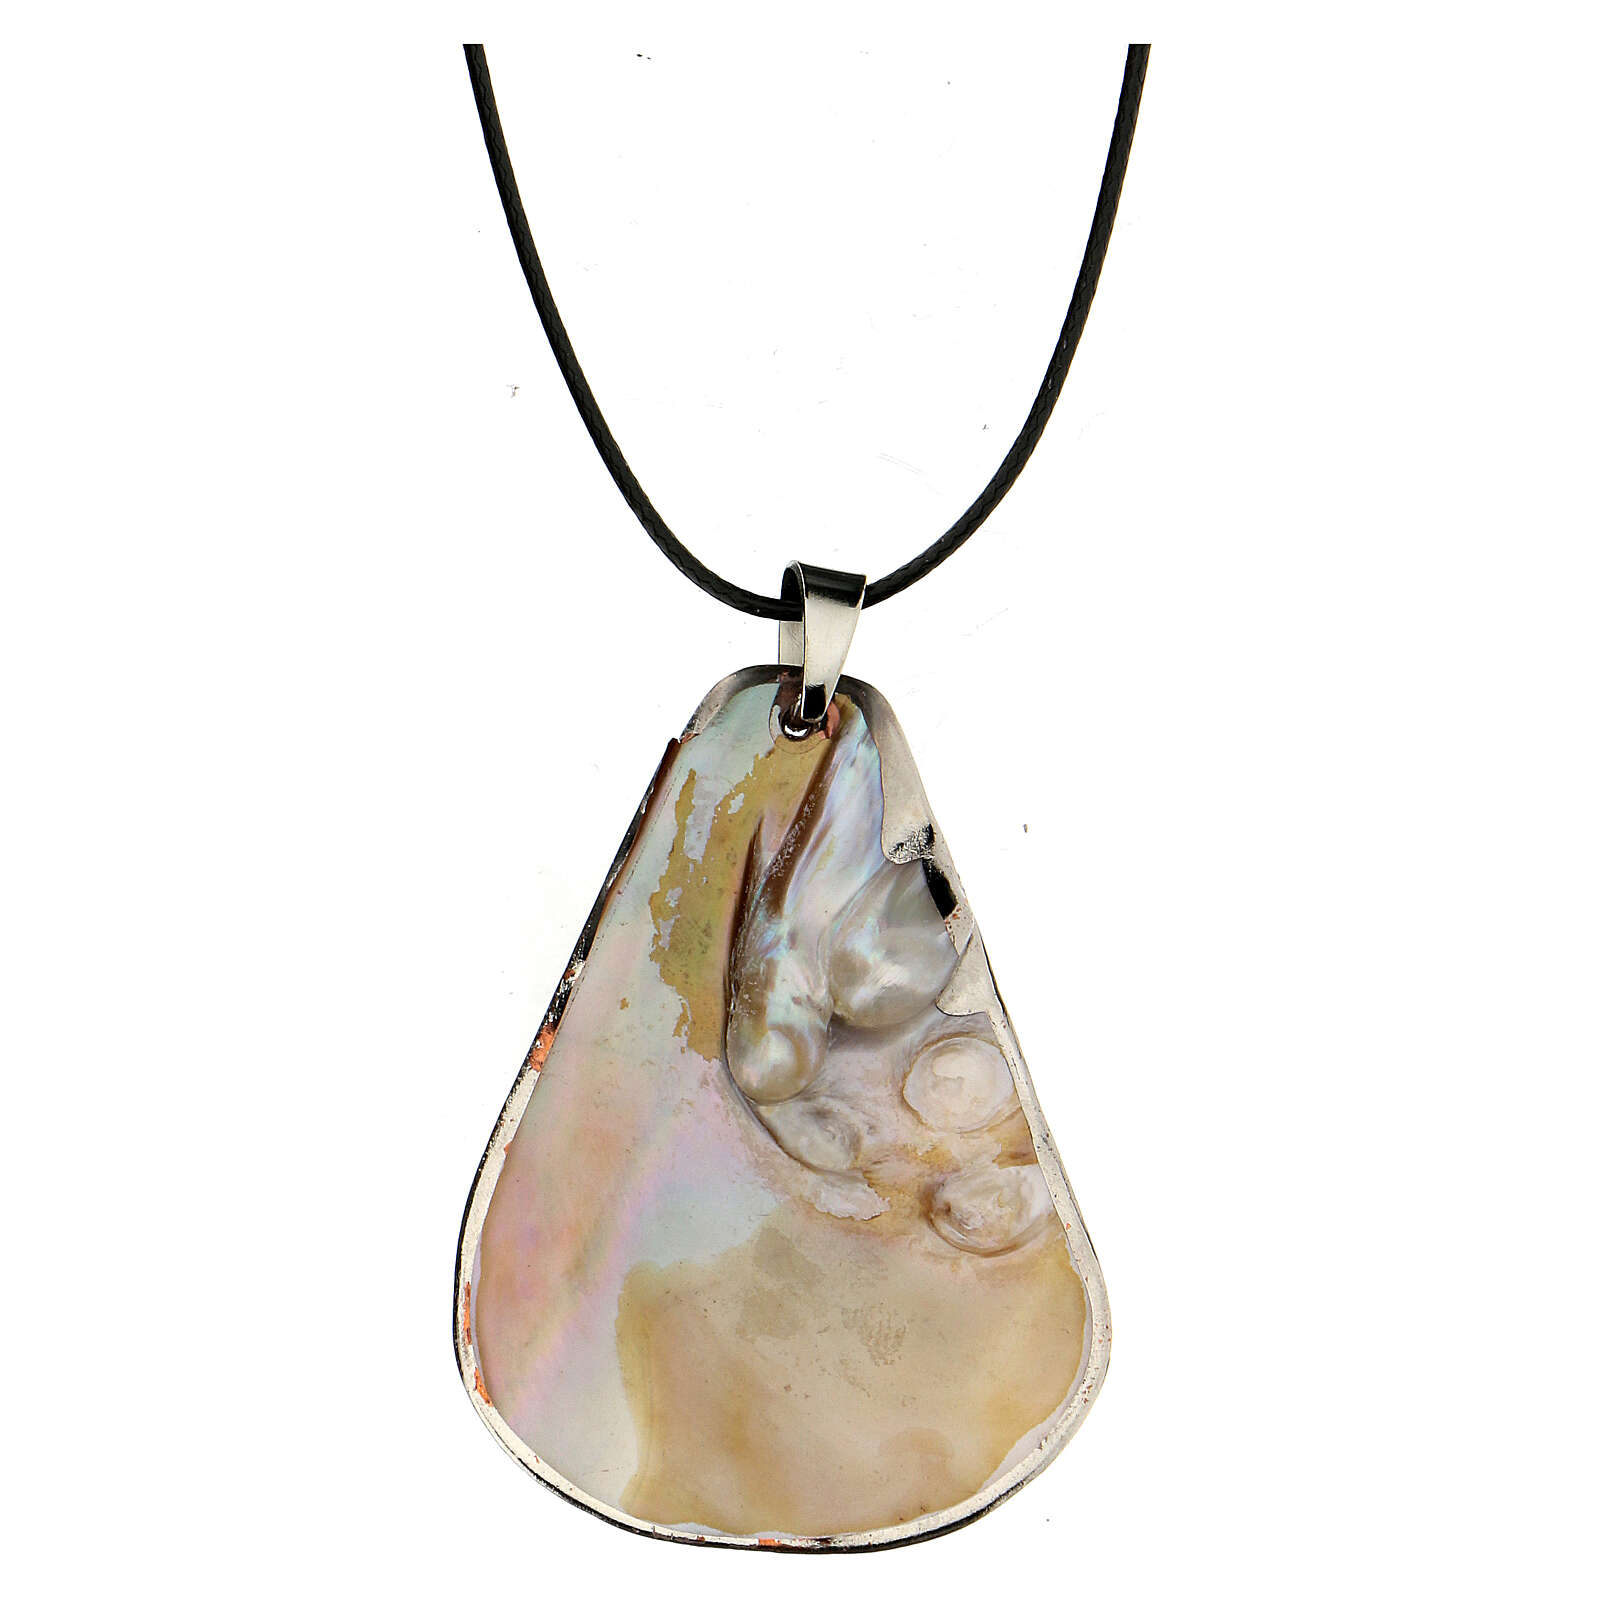 Pendant Our Lady of Lourdes natural mother-of-pearl 4